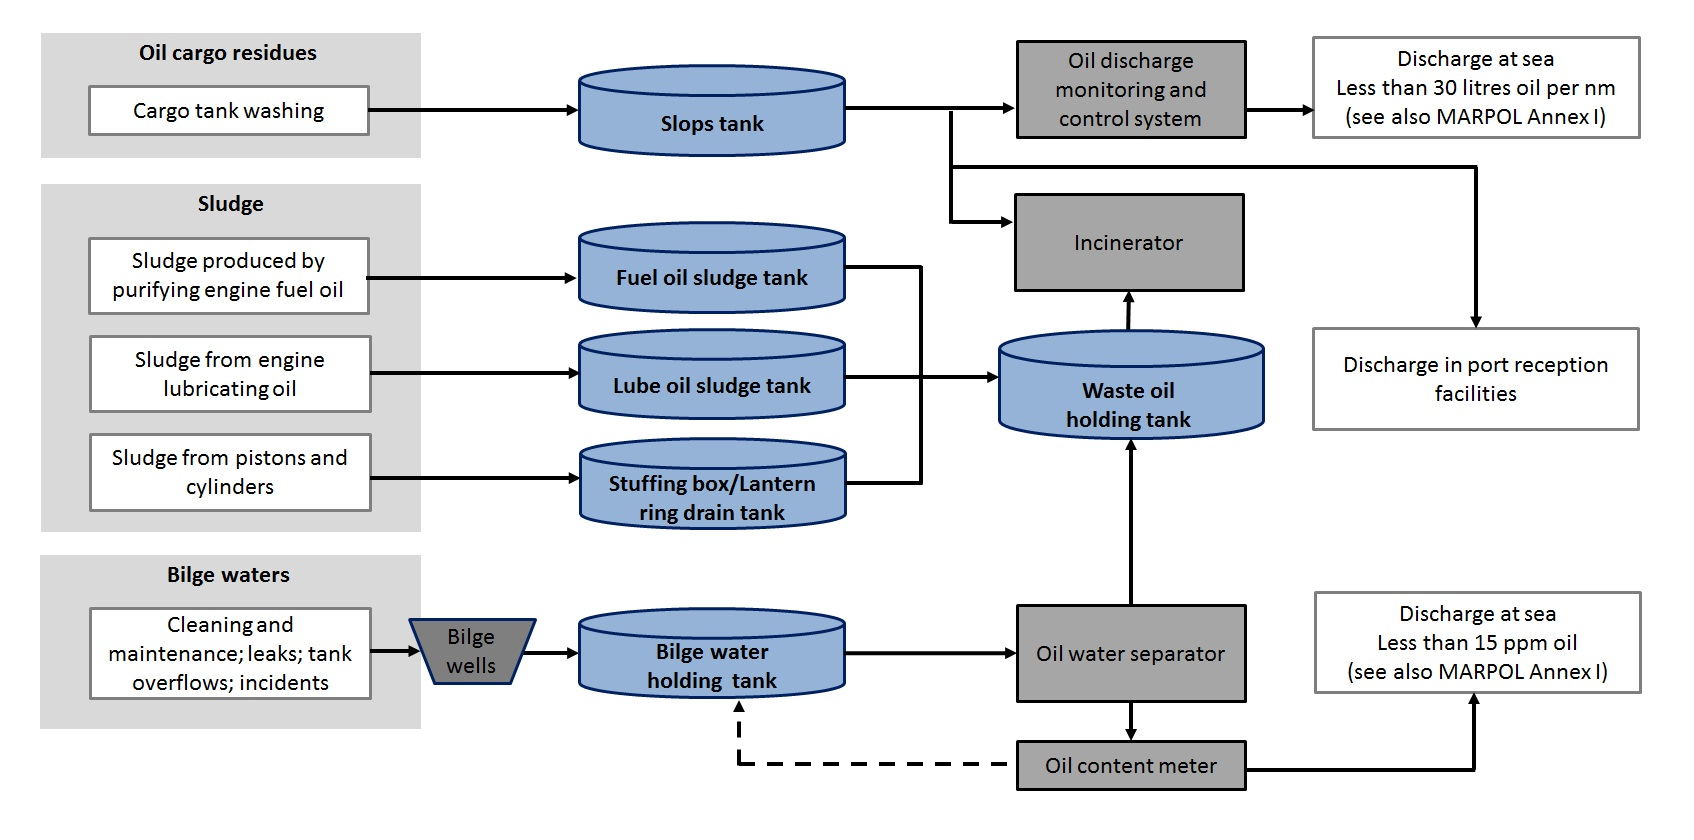 hight resolution of 2013 11 05 how oily waste is generated onboard vessels figure 4